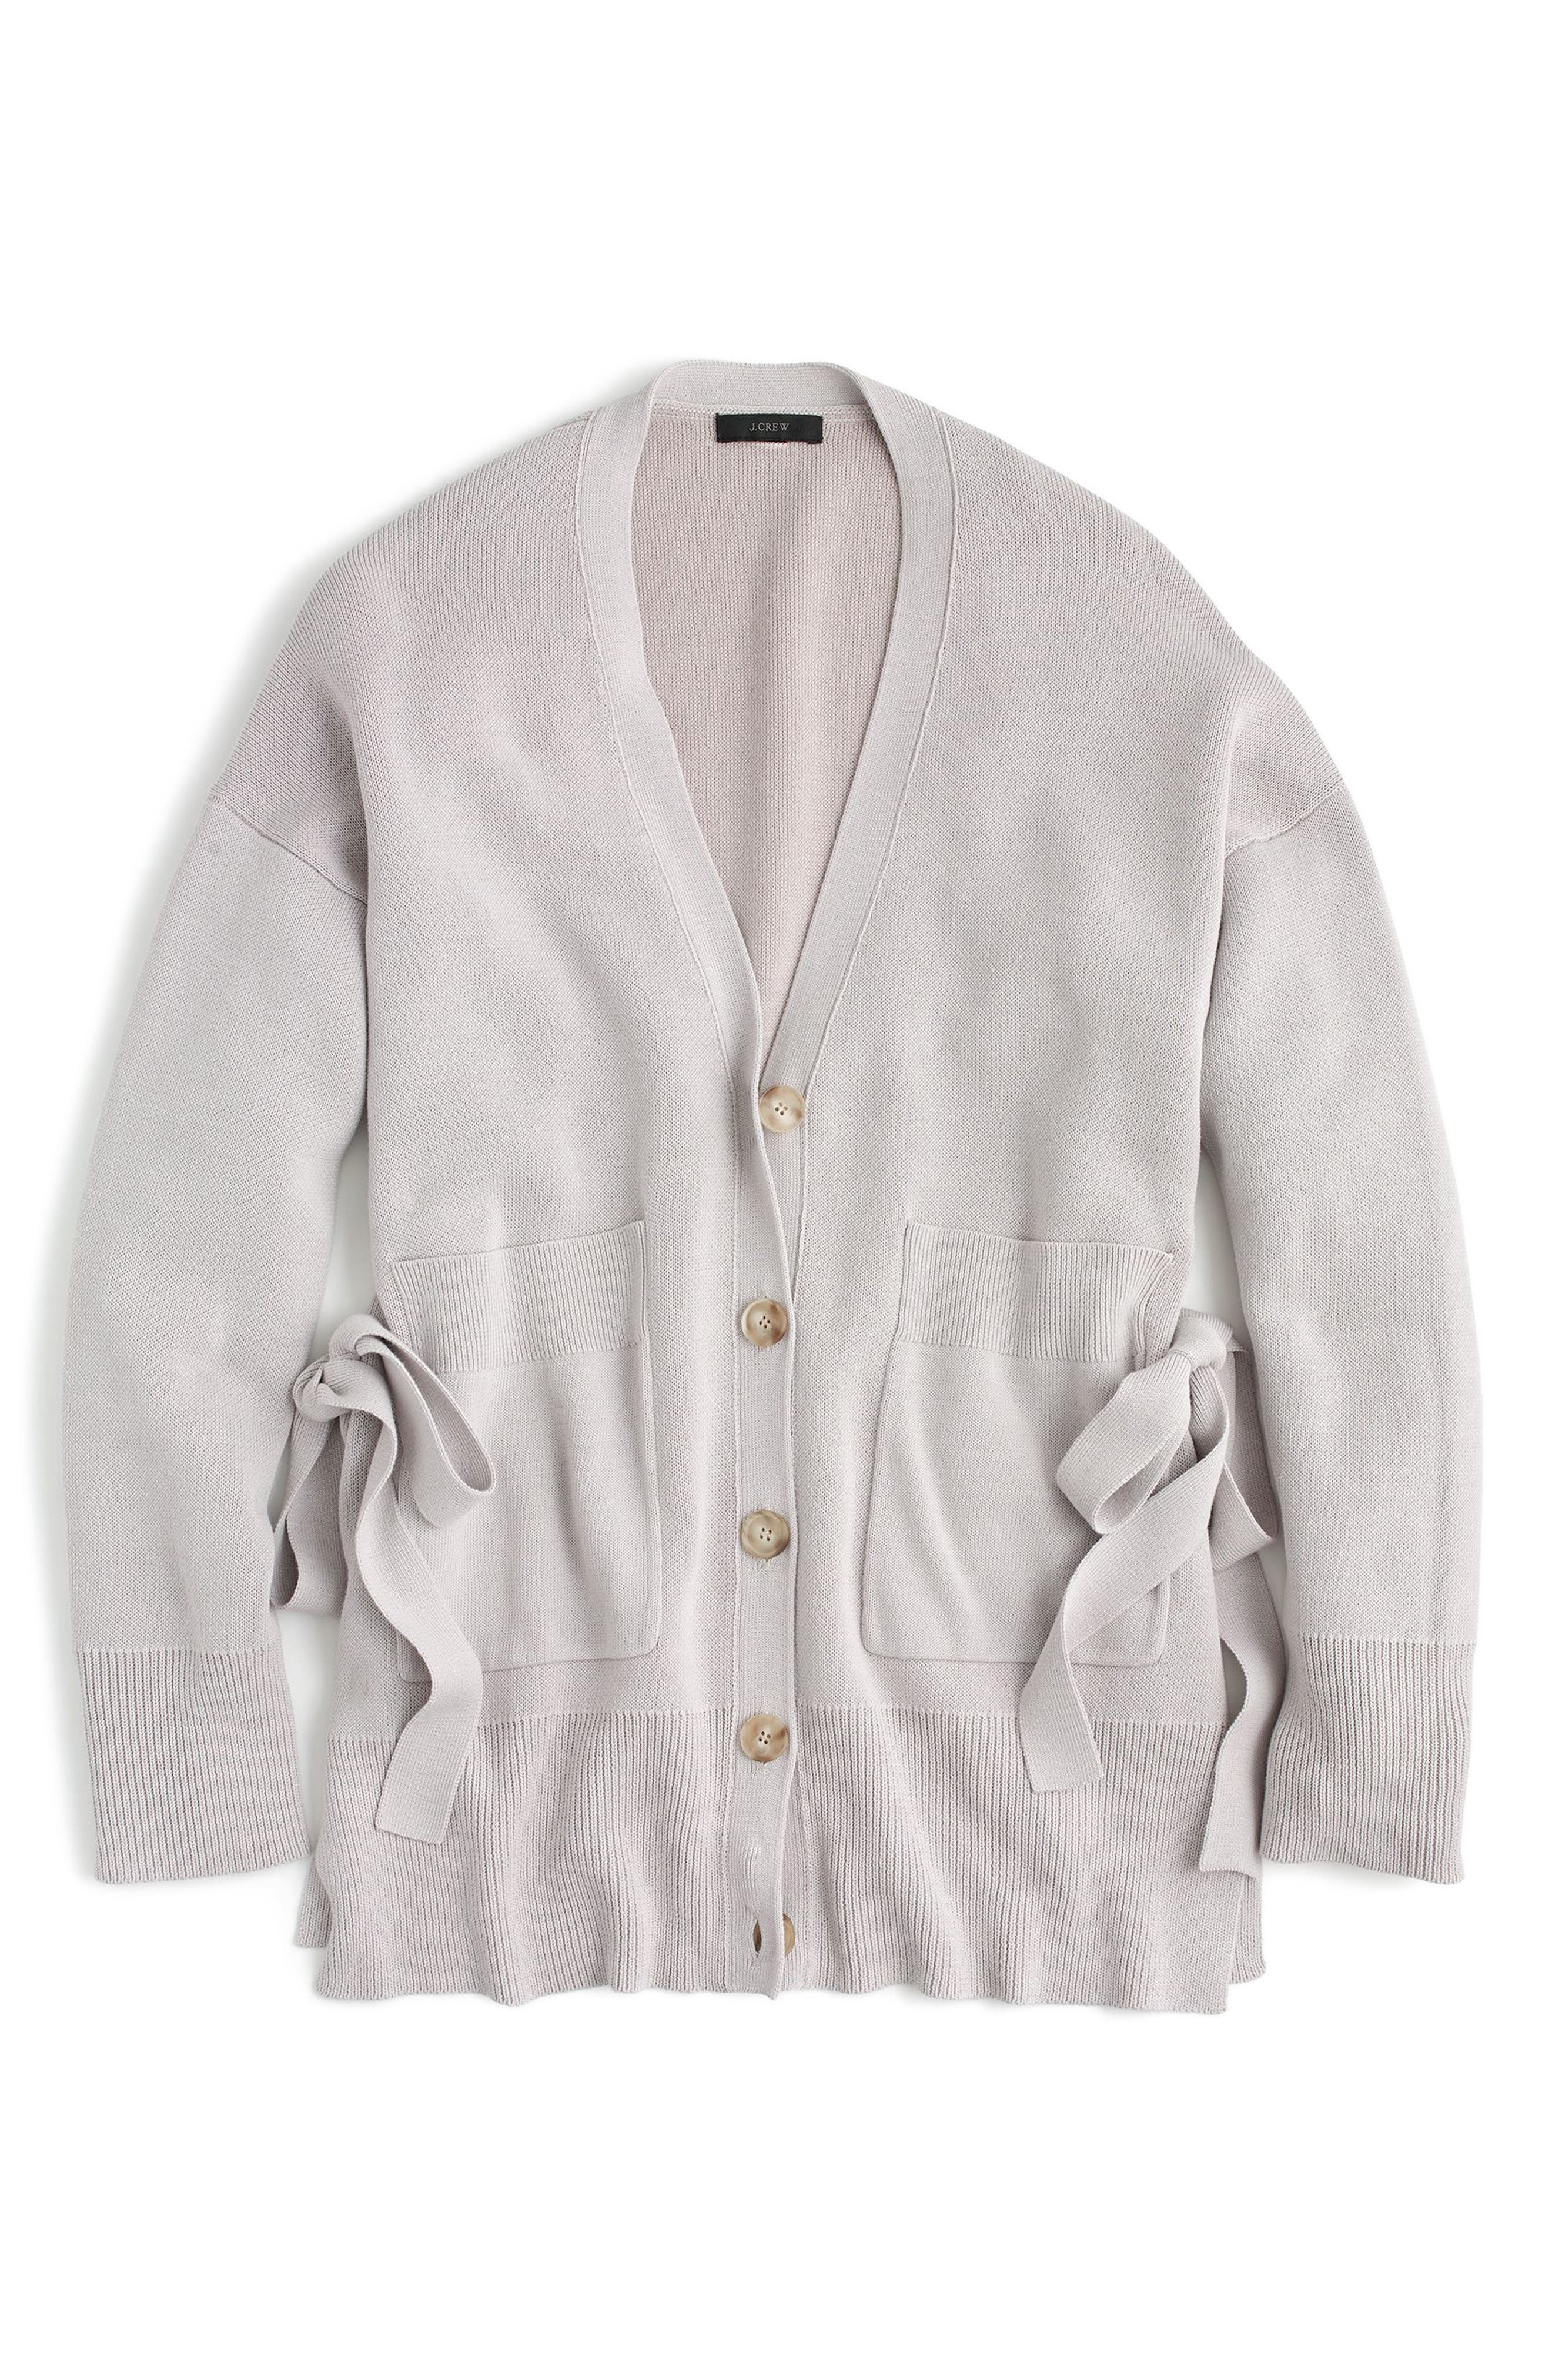 J.Crew Slouchy Cardigan with Side Ties